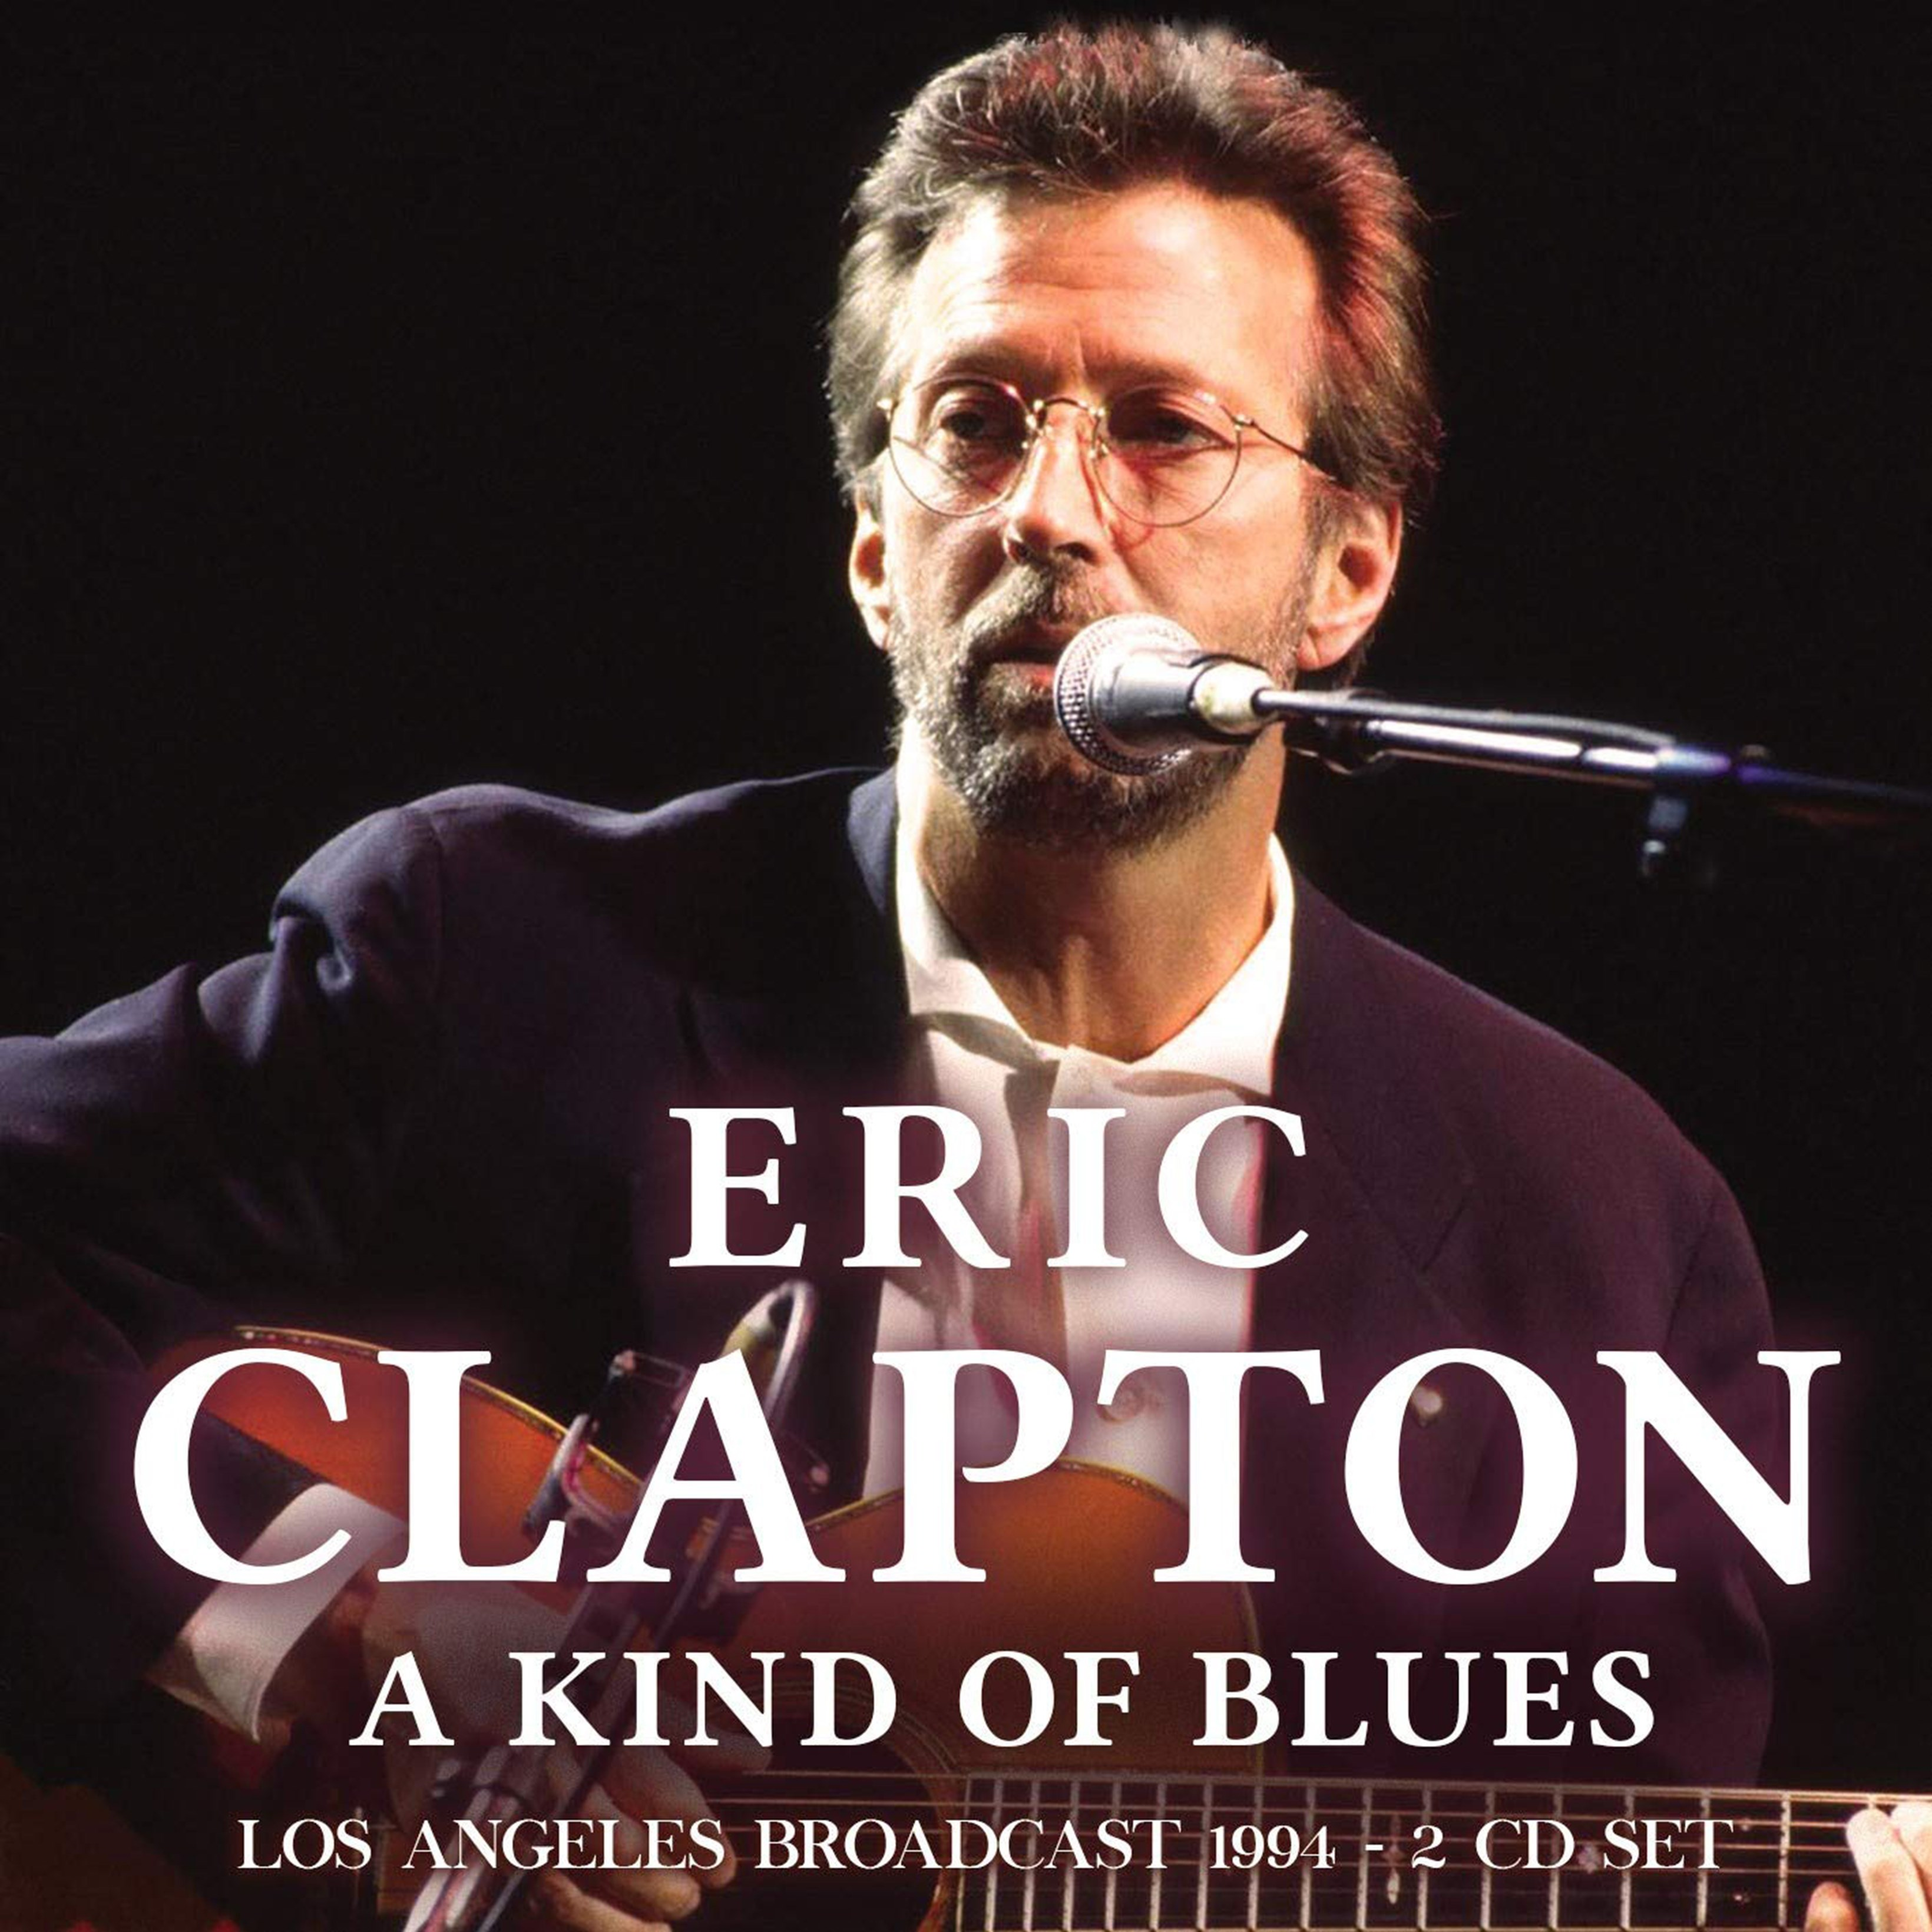 A Kind of Blues: Los Angeles Broadcast 1994 - 1